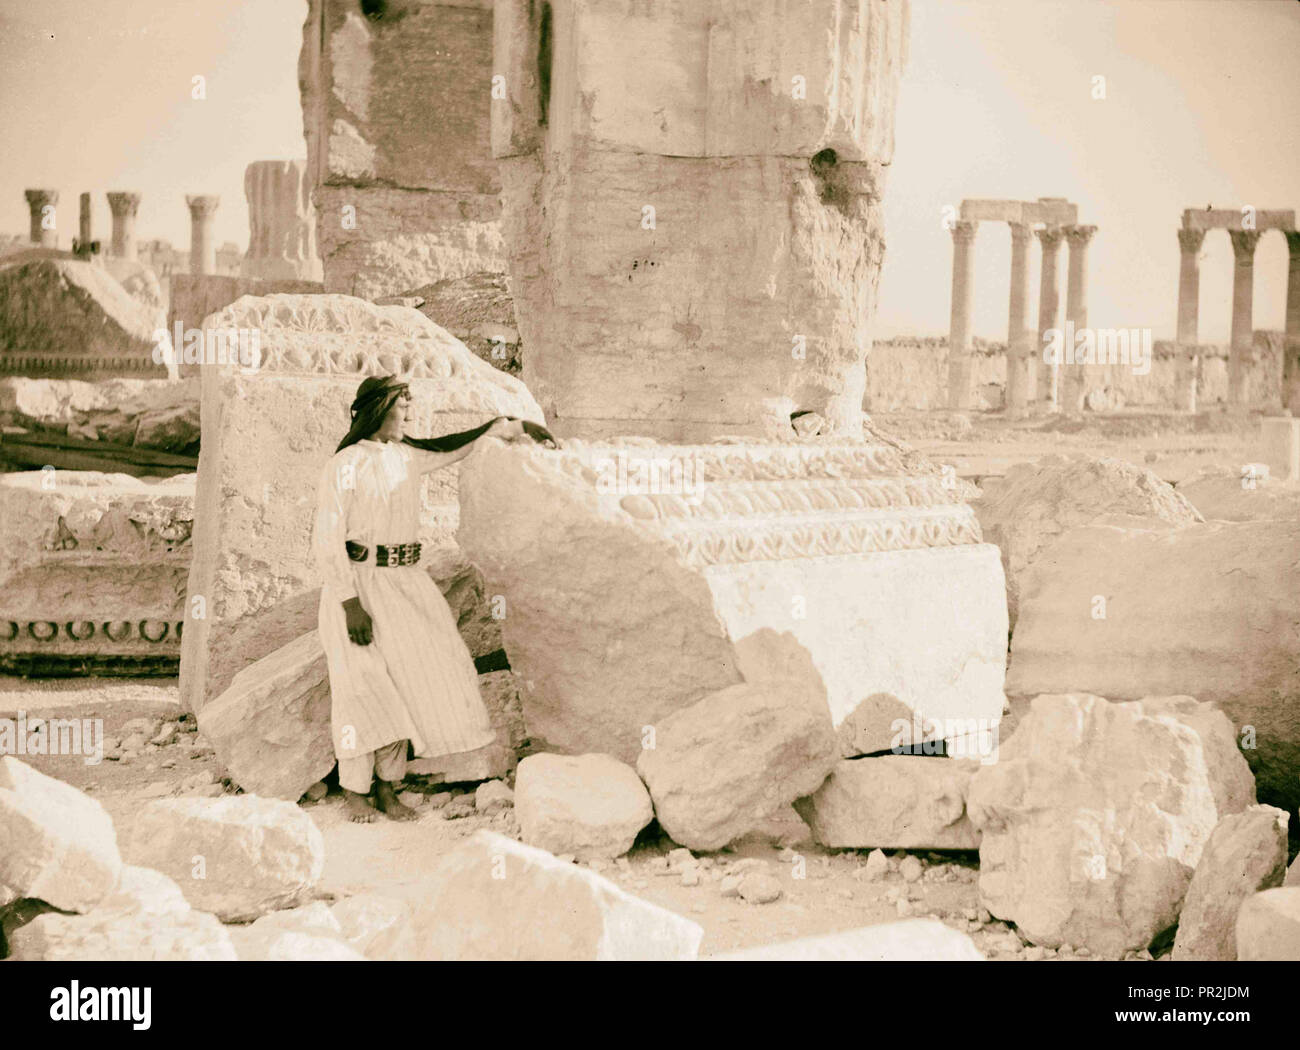 Palmyra. Temple of Baal. Fragments of the entablature, etc., at the main entrance. 1920, Syria, Tadmur - Stock Image